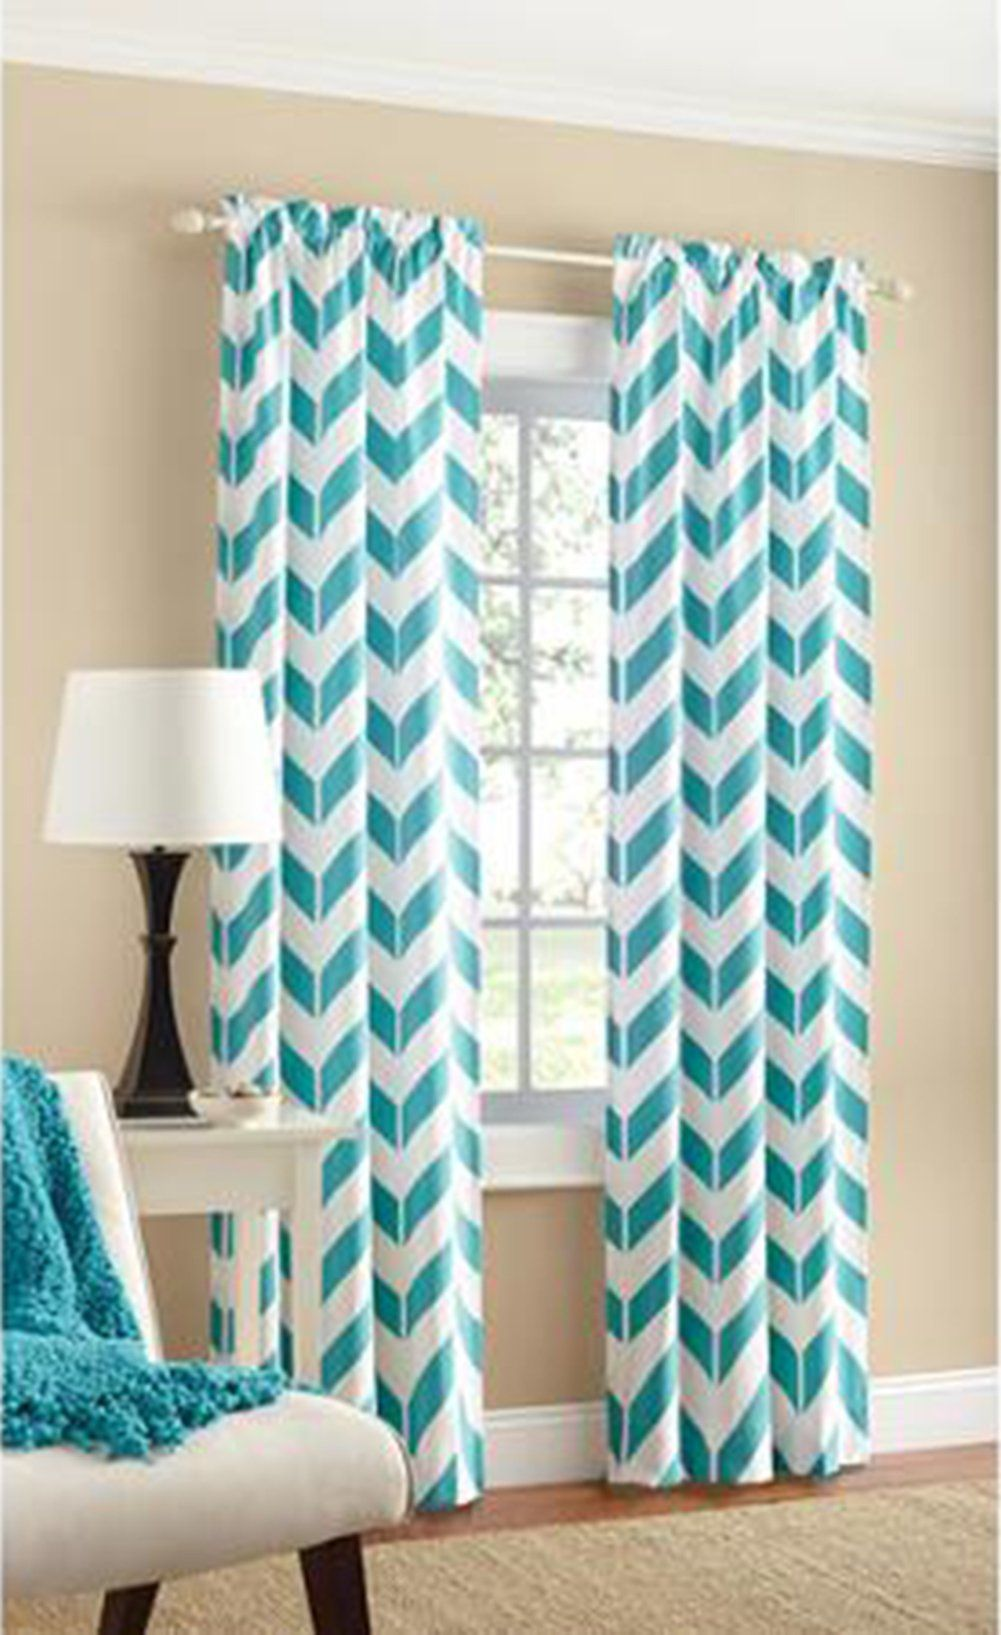 Robot Check Chevron Curtains Panel Curtains Cotton Curtains